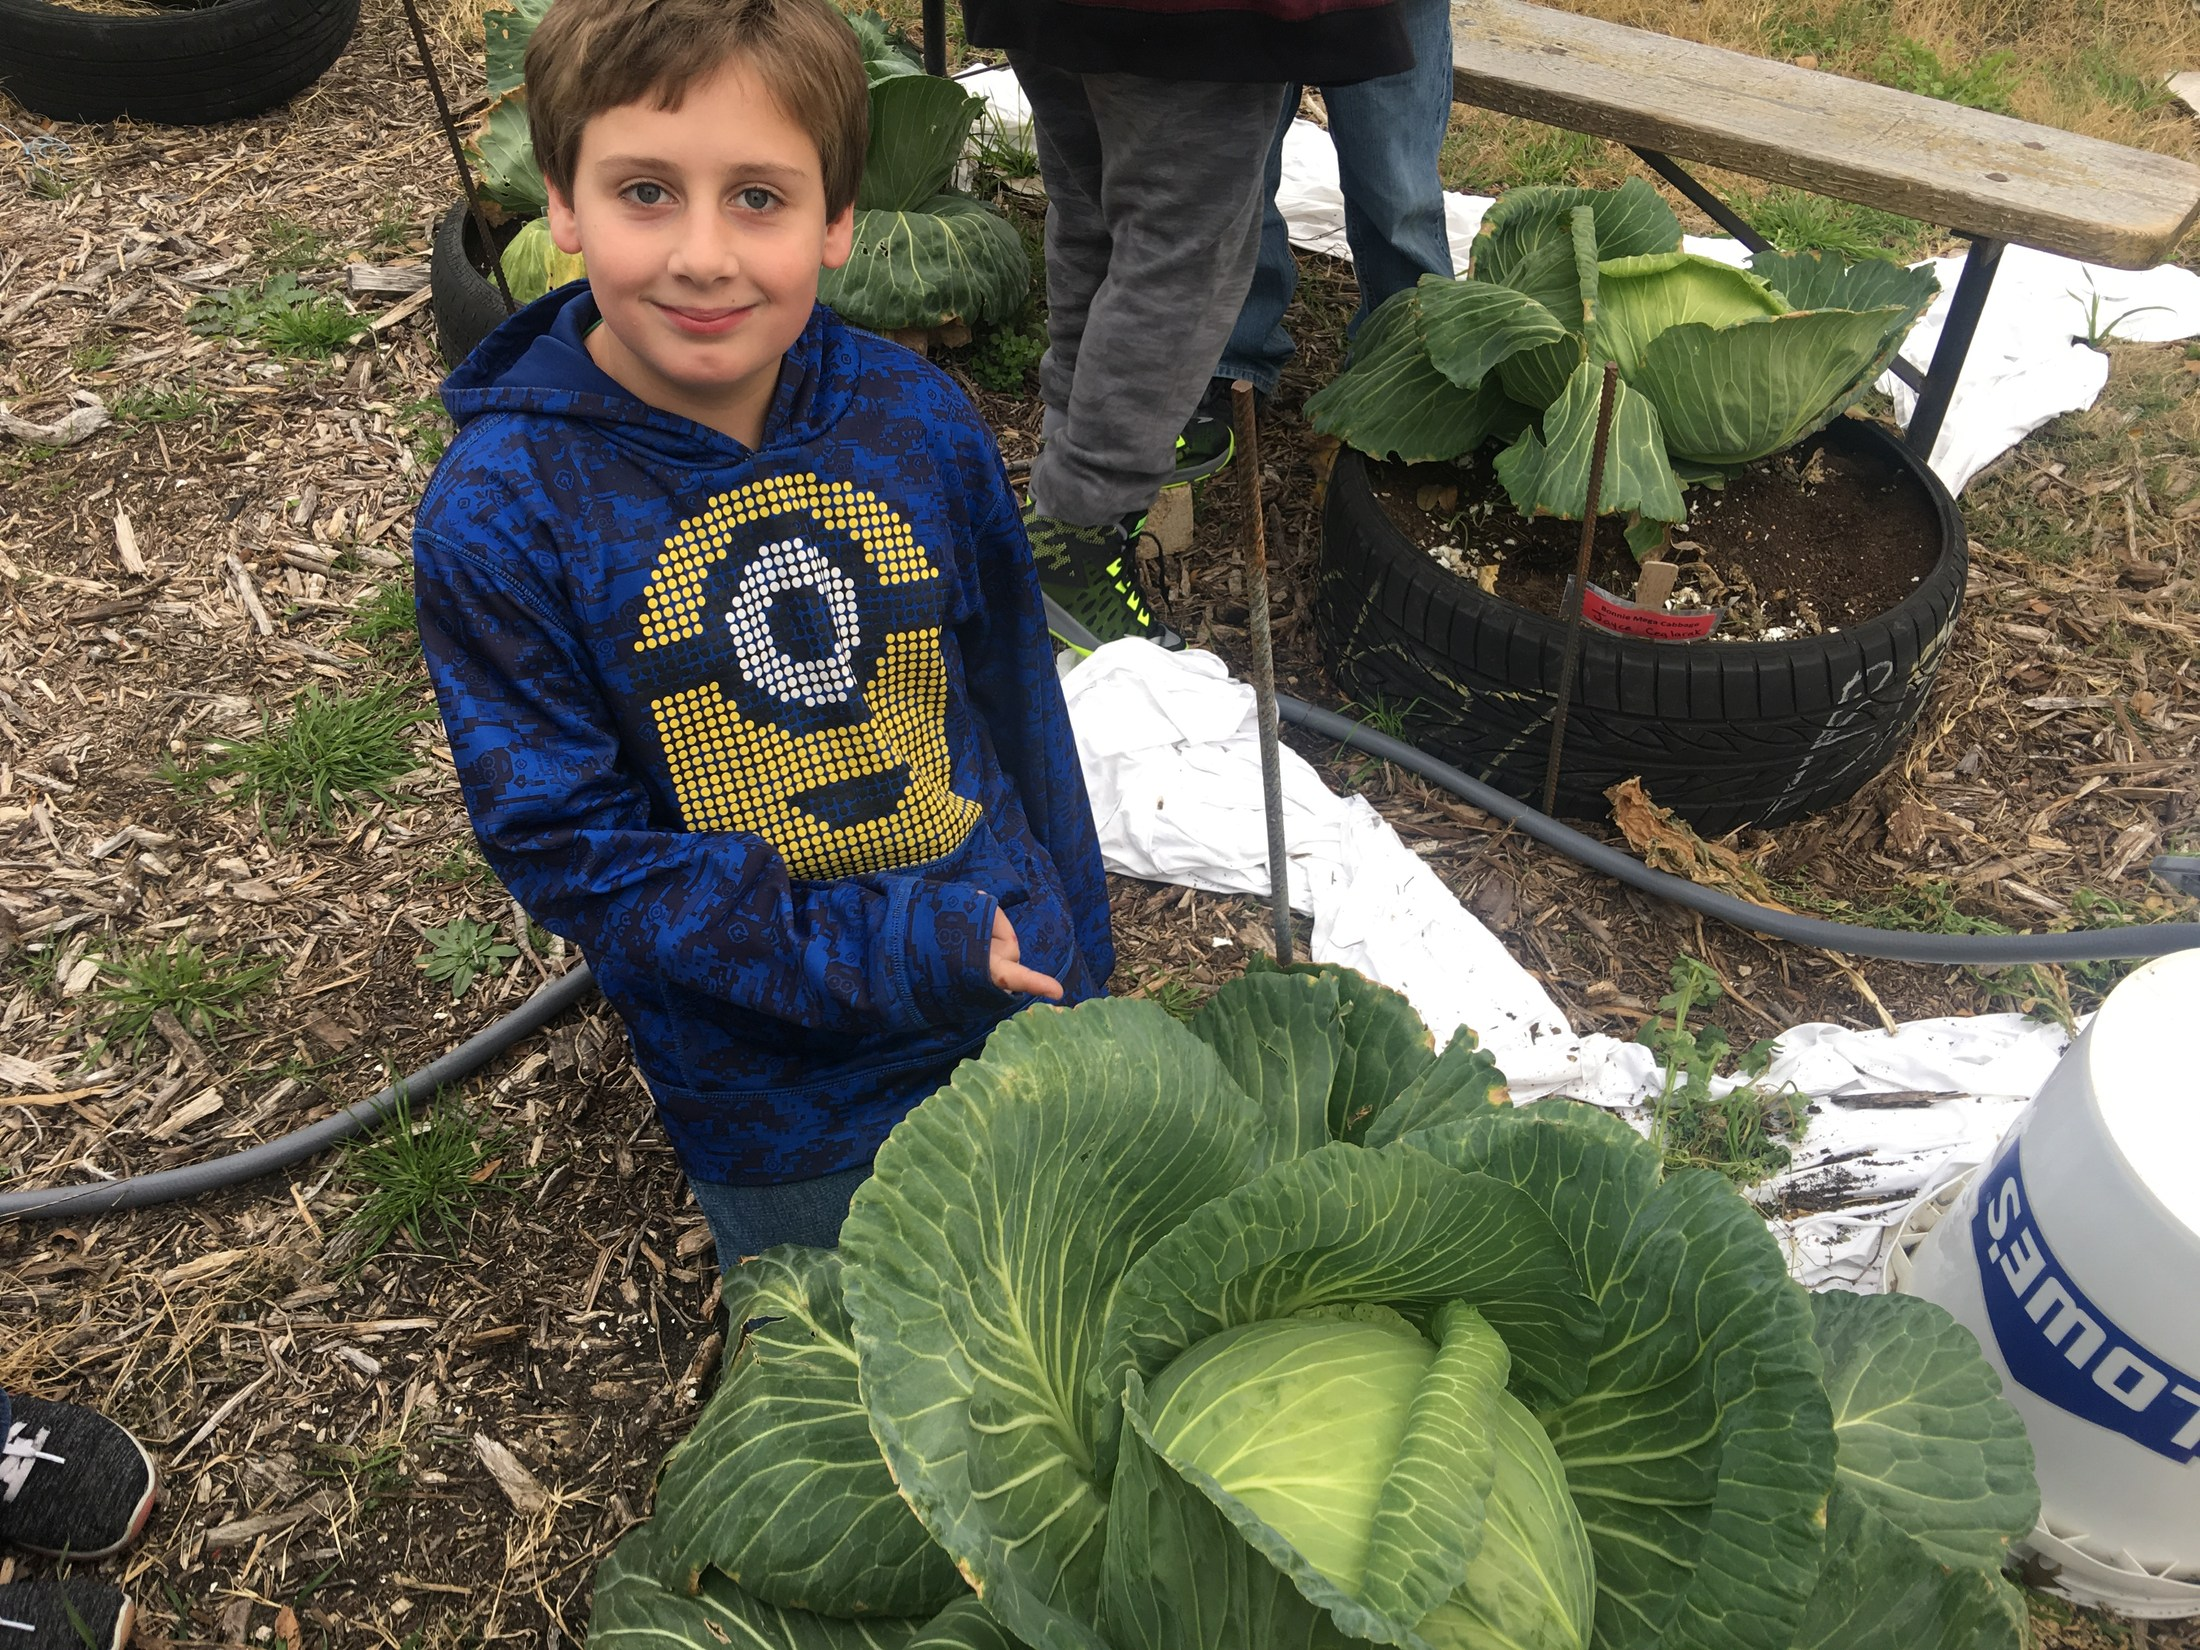 Garden club members care for their plants.